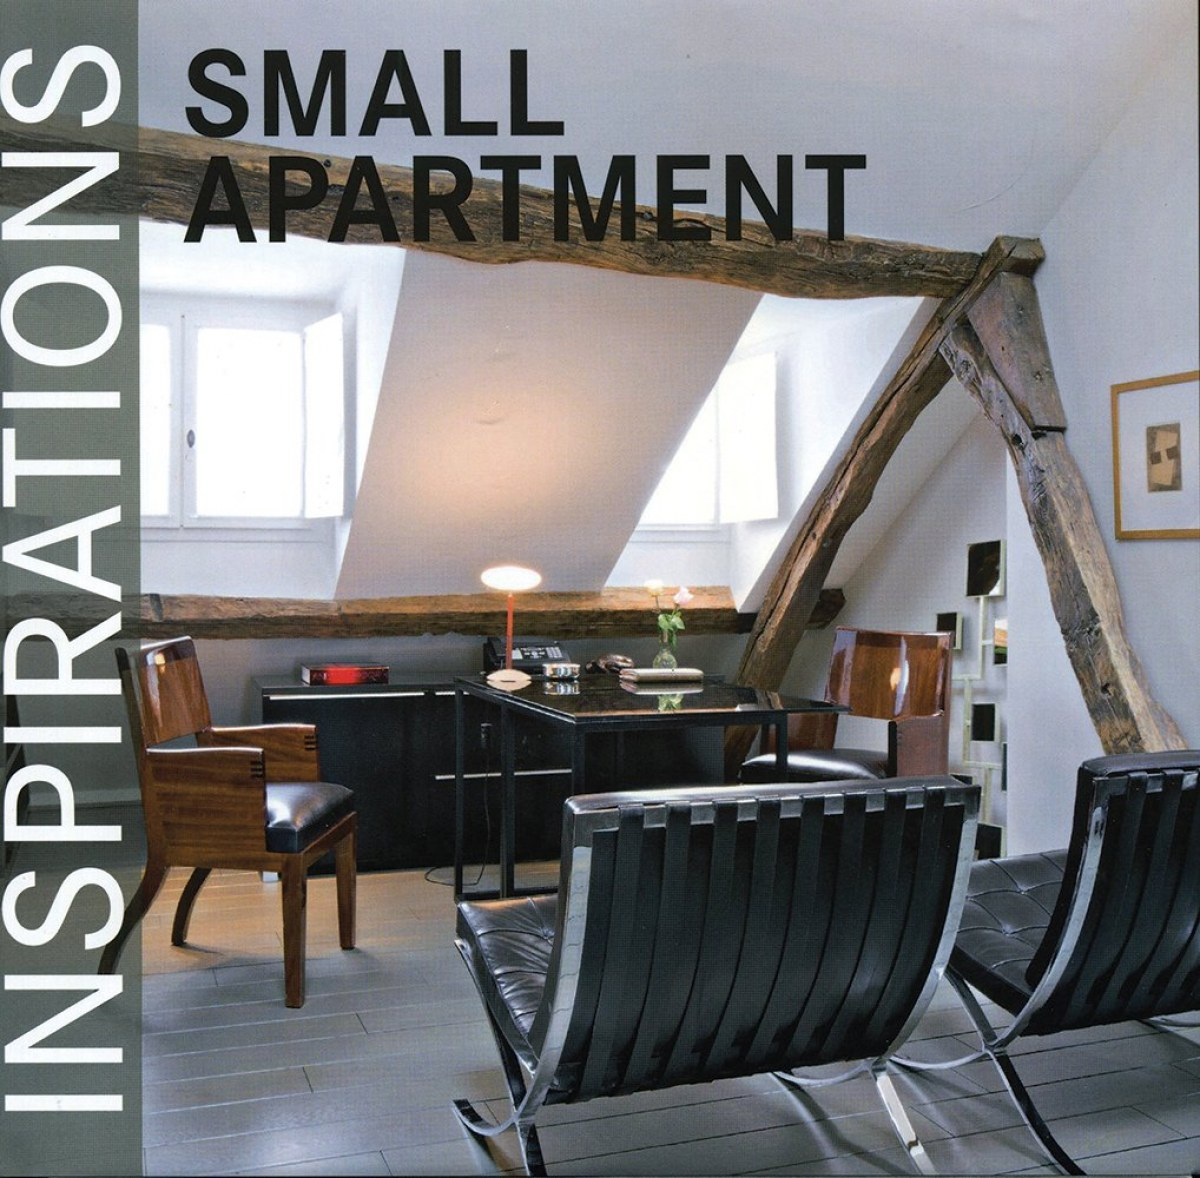 Small apartment inspirations 9783864073106